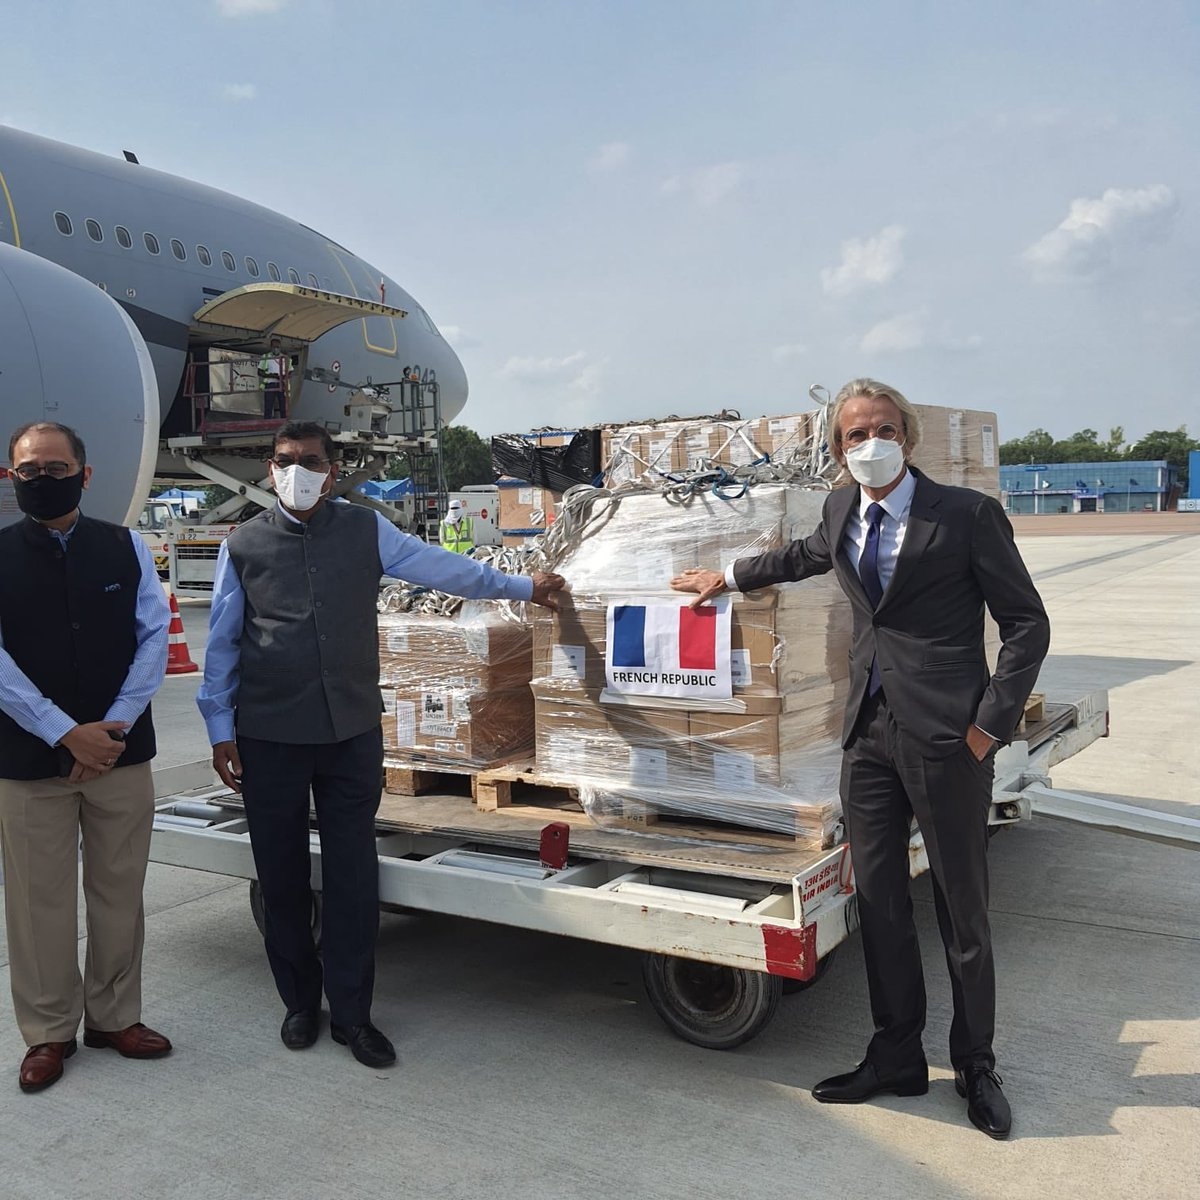 Delighted to hand over #COVID19 medical equipment from France to Shri RK Jain, Secy General @IndianRedCross. France earlier granted €200 MN in financial aid to India thro' @AFD_en. With @IFCCI1 CSR committee, French companies, too, have contributed to relief efforts in India.